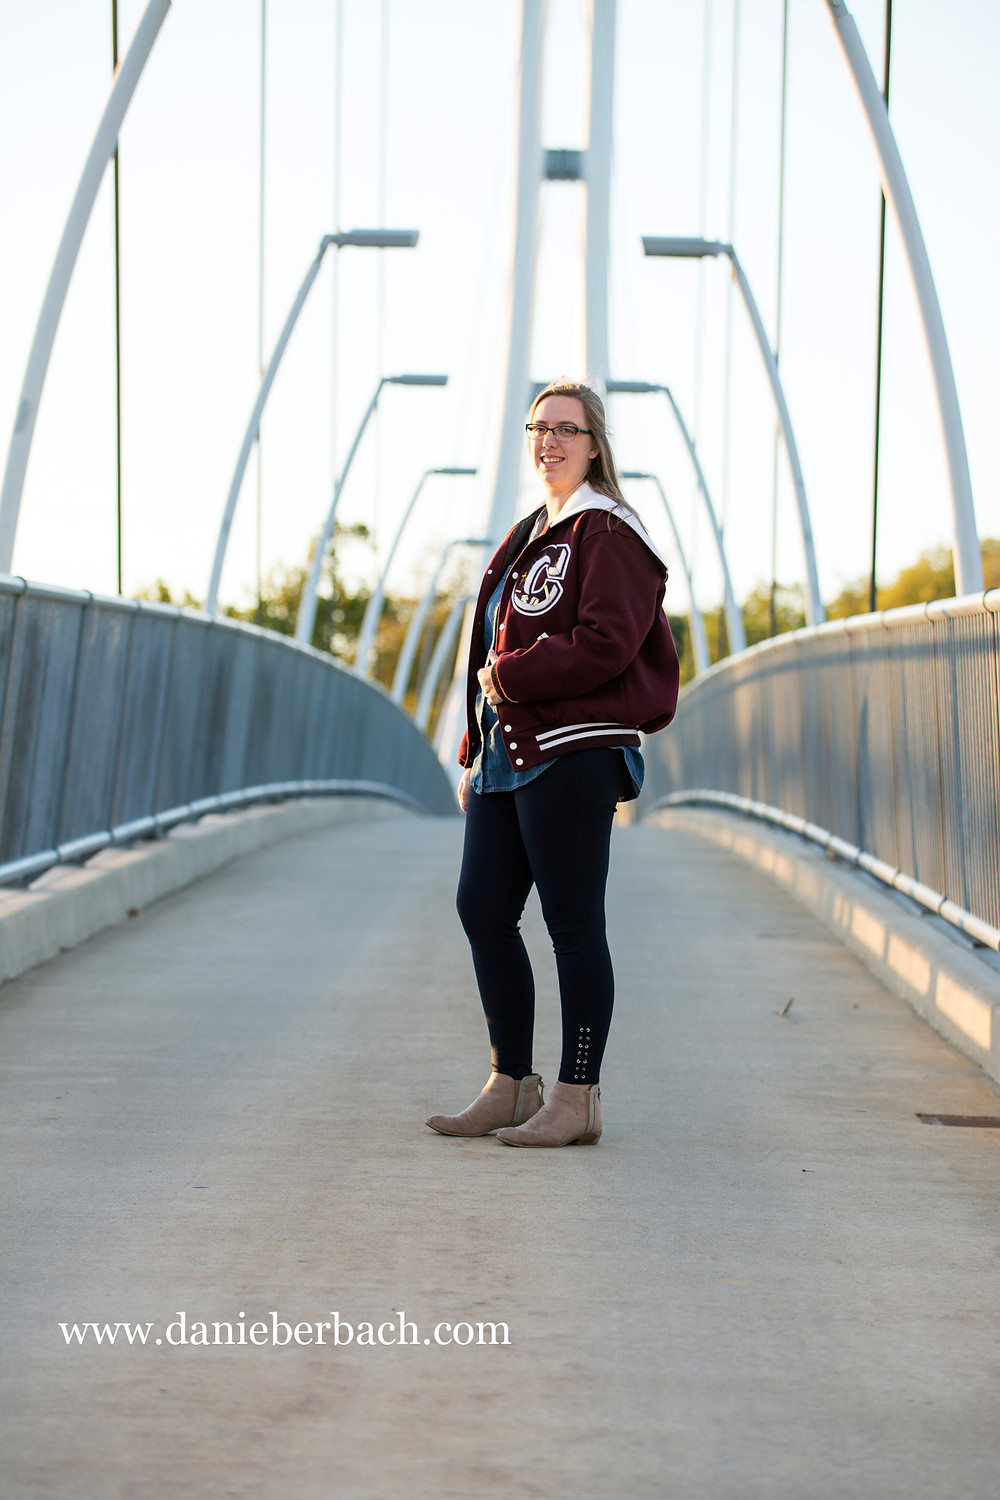 Senior portrait on IPFW bridge